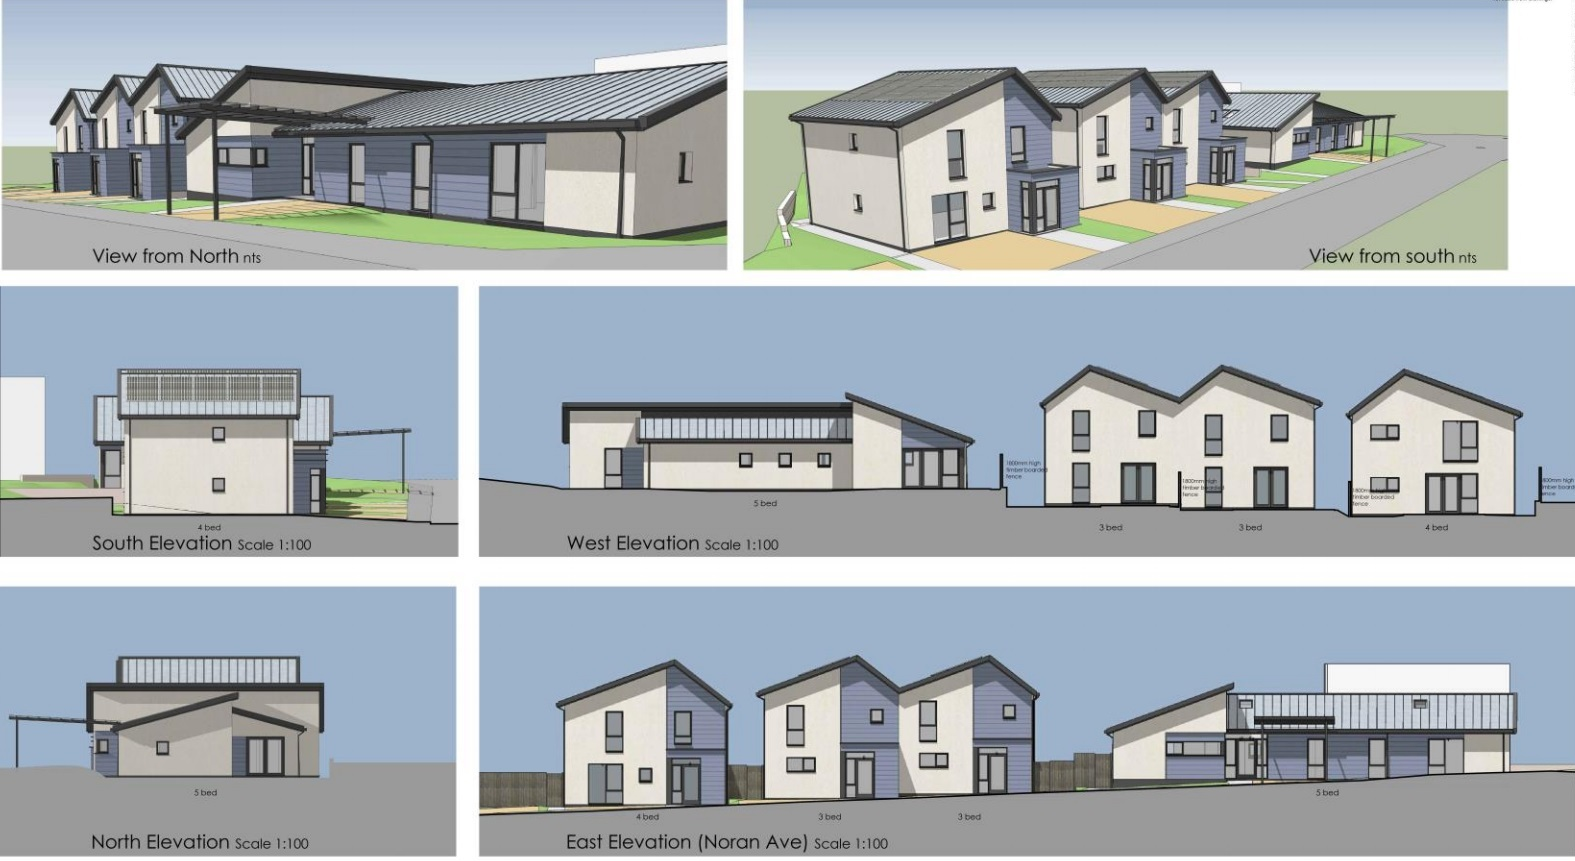 The plans for the four new homes in Noran Avenue, Arbroath